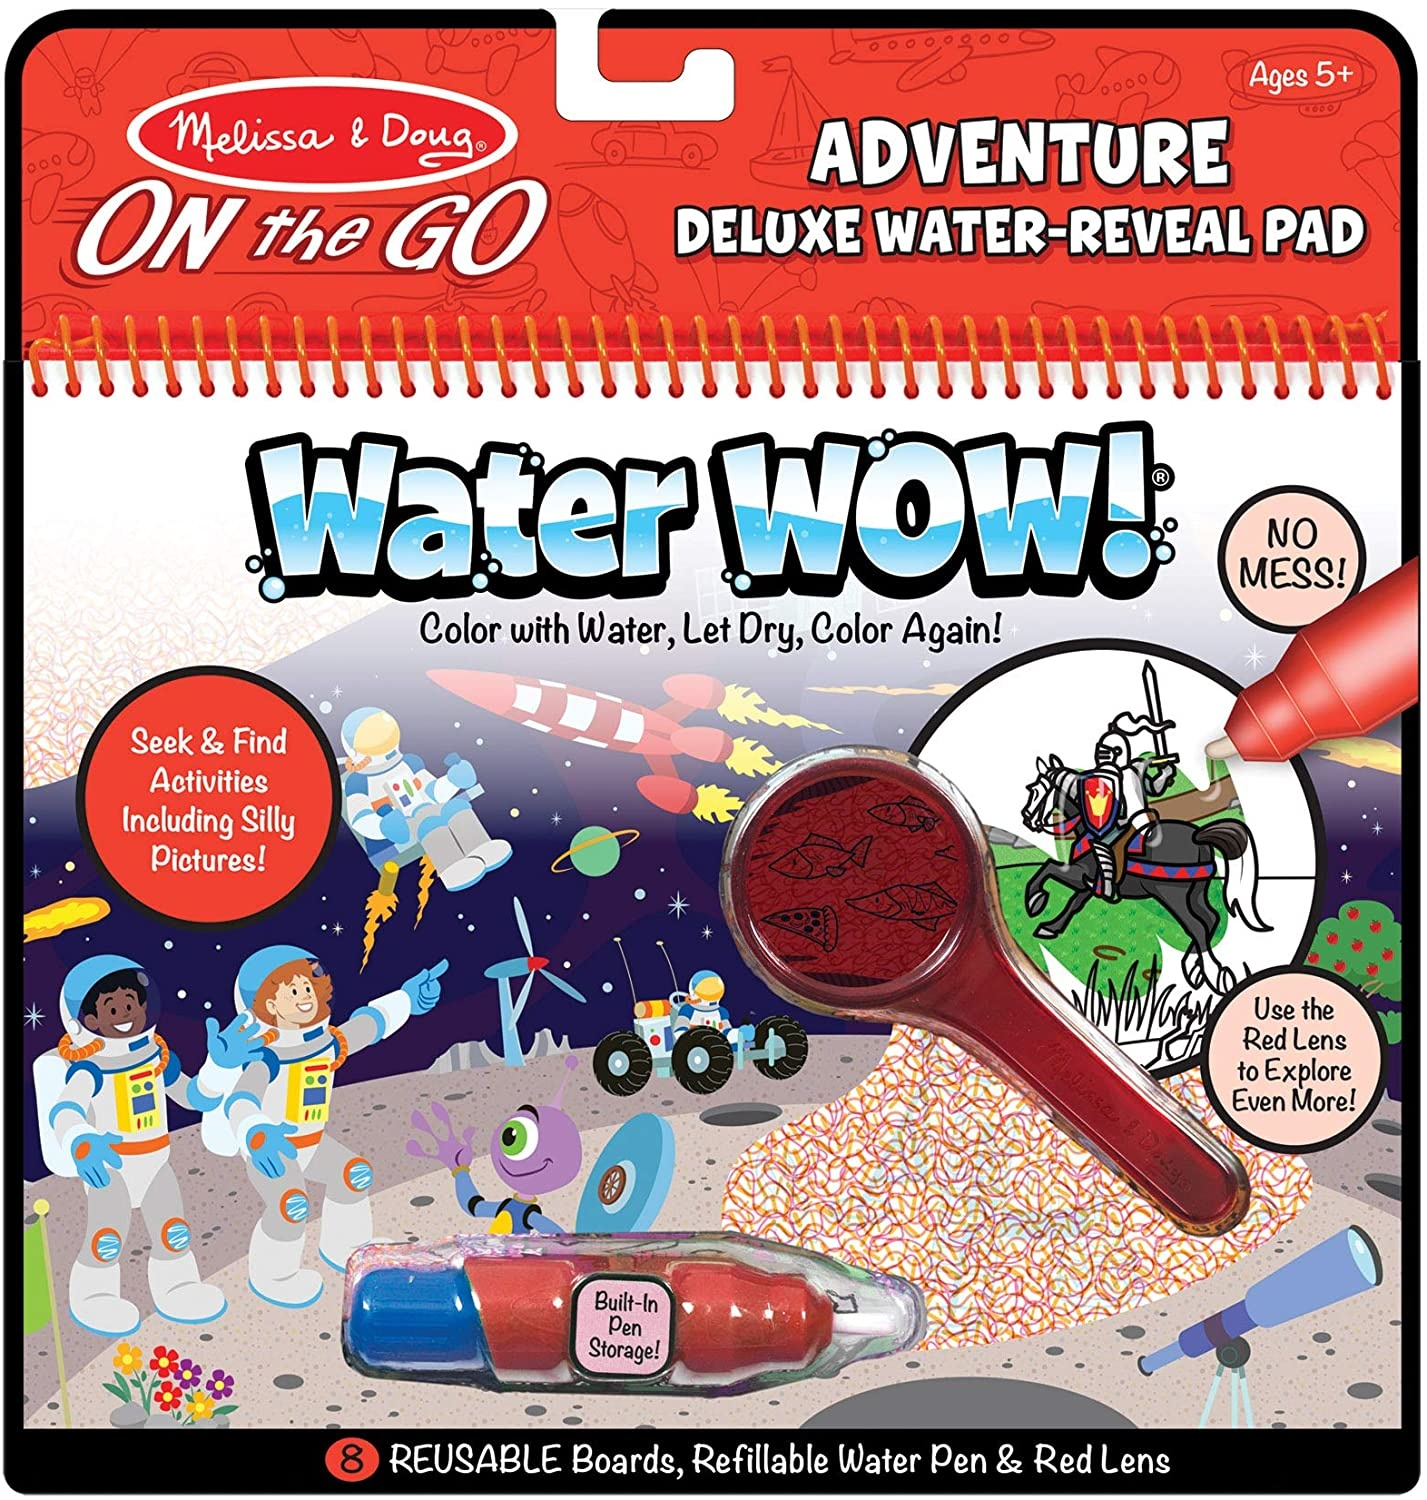 Water Wow! Deluxe Water Reveal Pad - Adventure